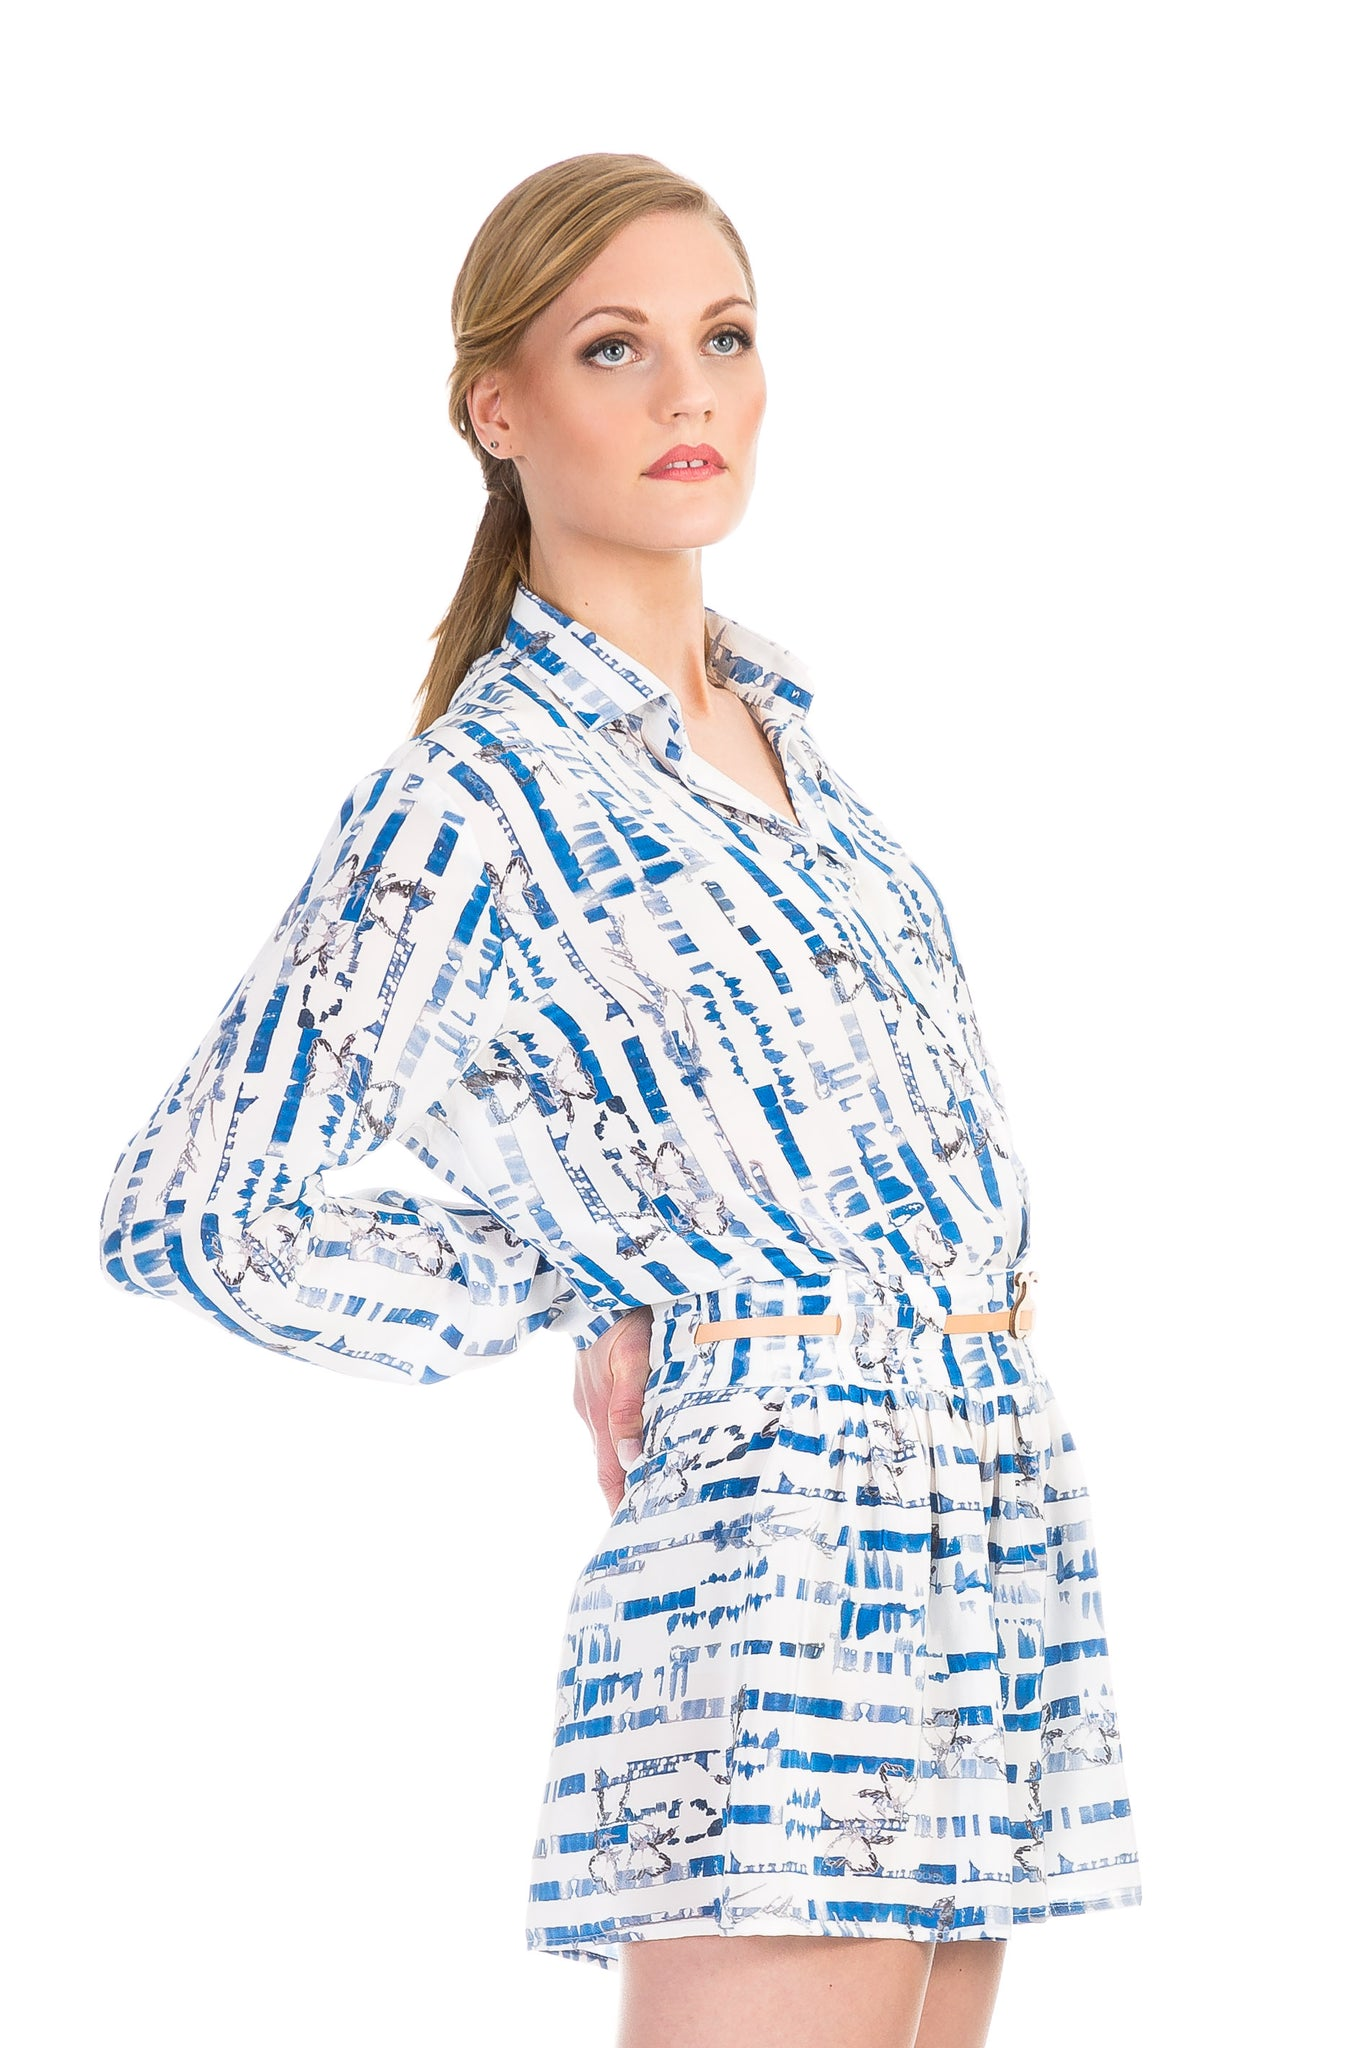 Blouse, Path blue white, silk